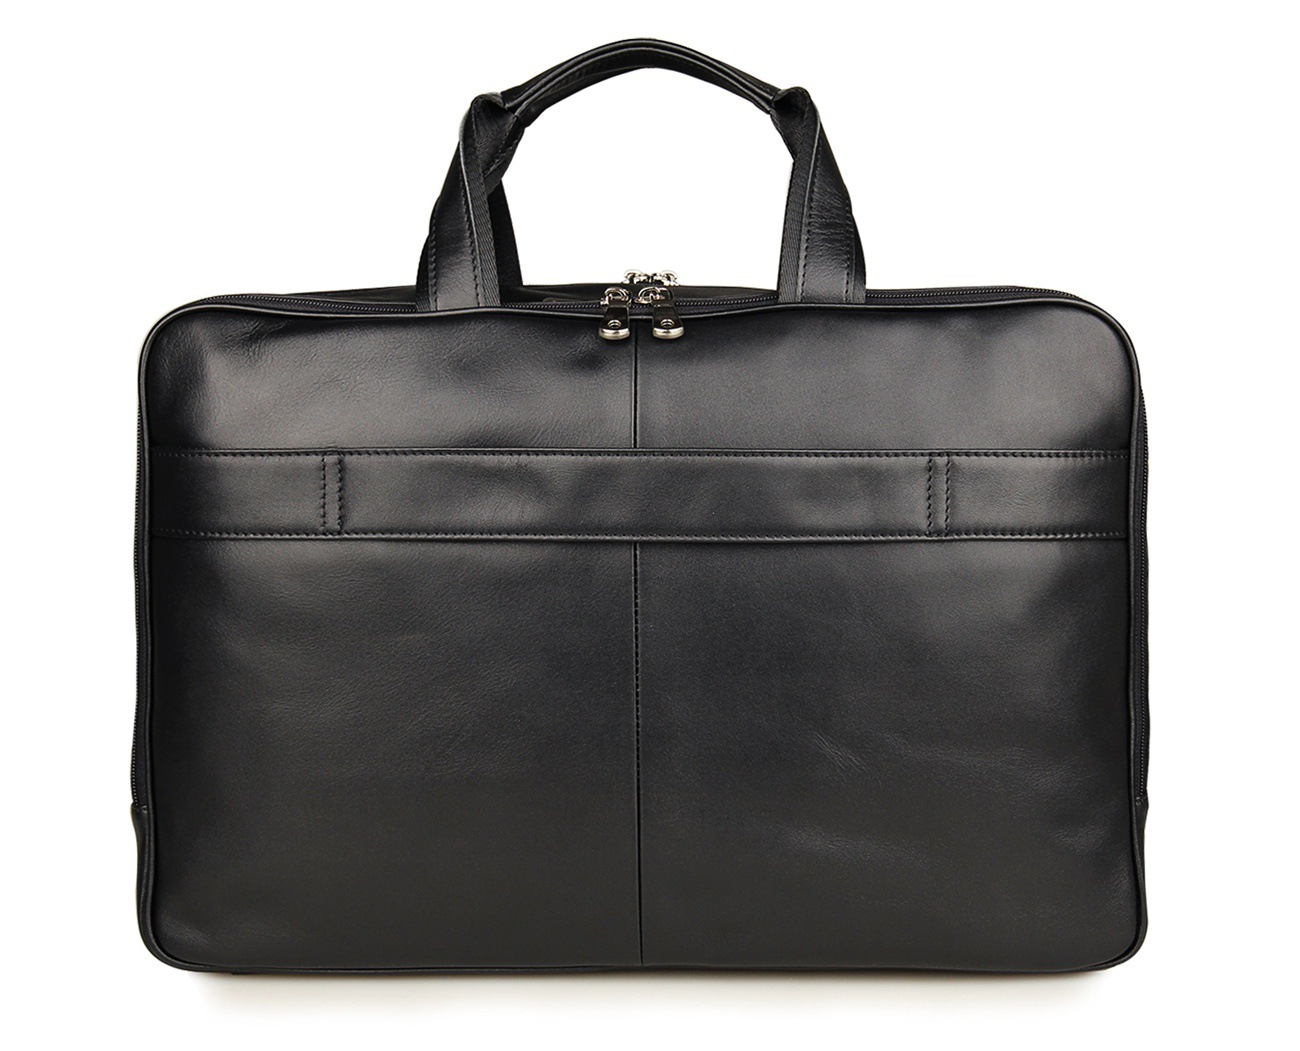 HTB1prnAeoGF3KVjSZFmq6zqPXXa9 MAHEU Vintage Leather Mens Briefcase With Pockets Cowhide Bag On Business Suitcase Crazy Horse Leather Laptop Bags 2019 Design